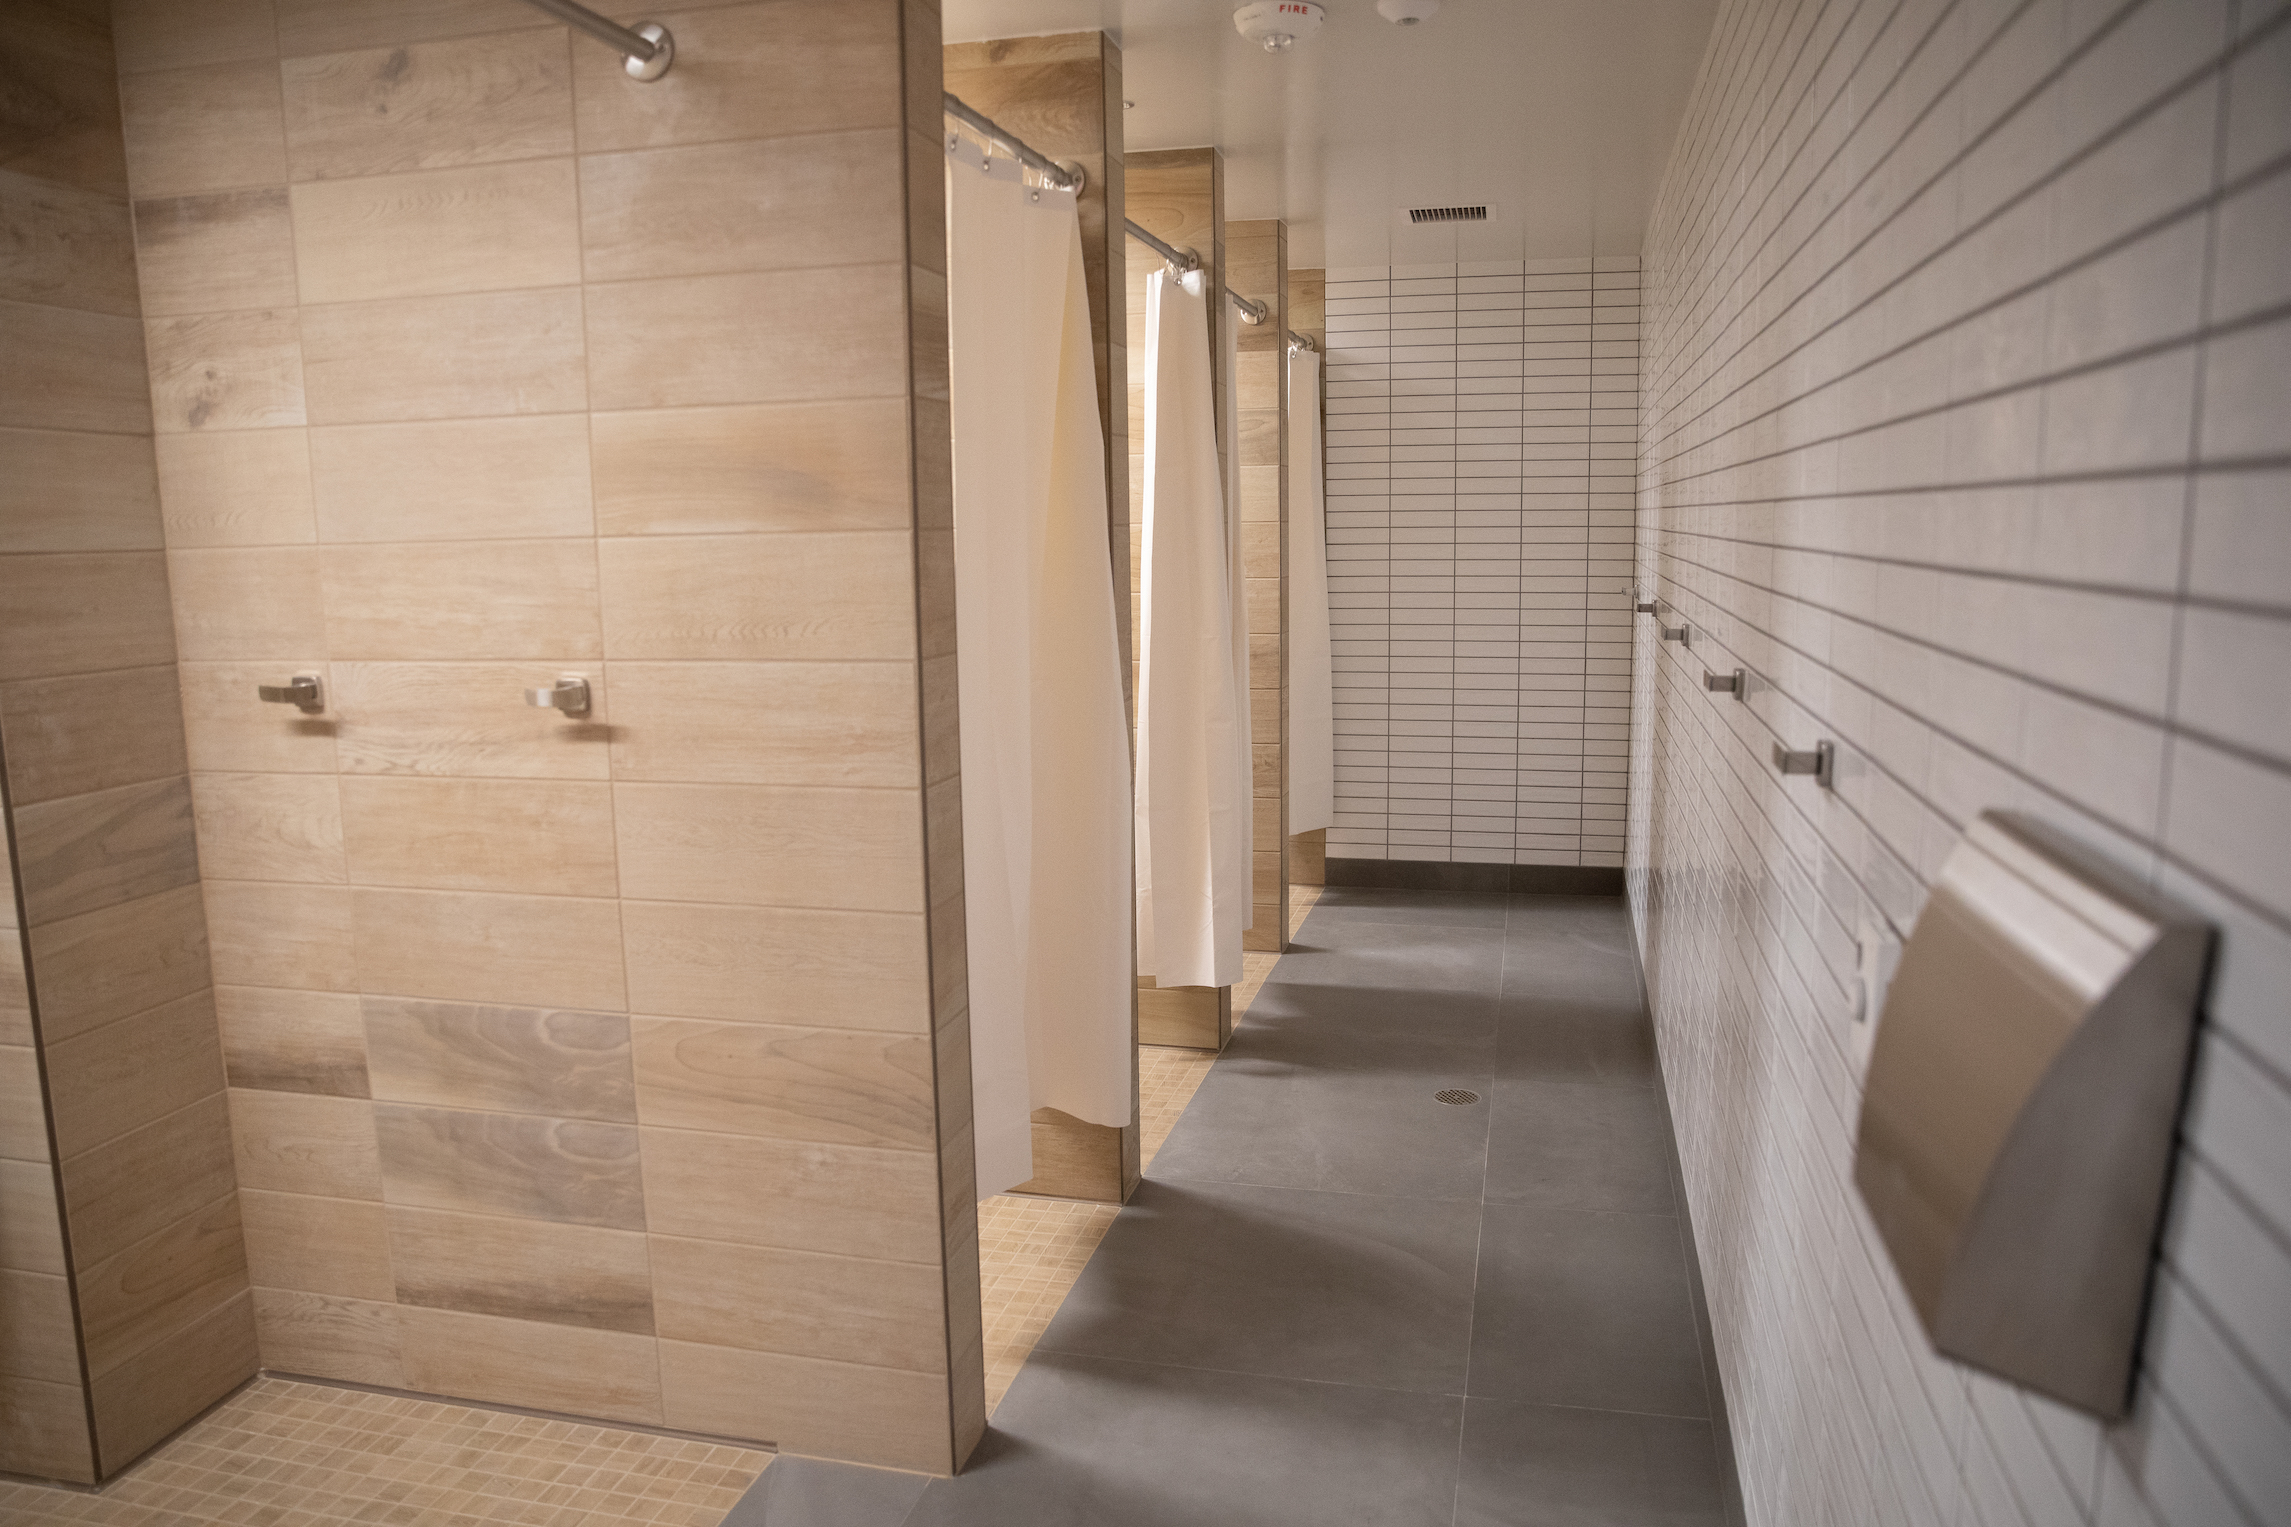 new private showers